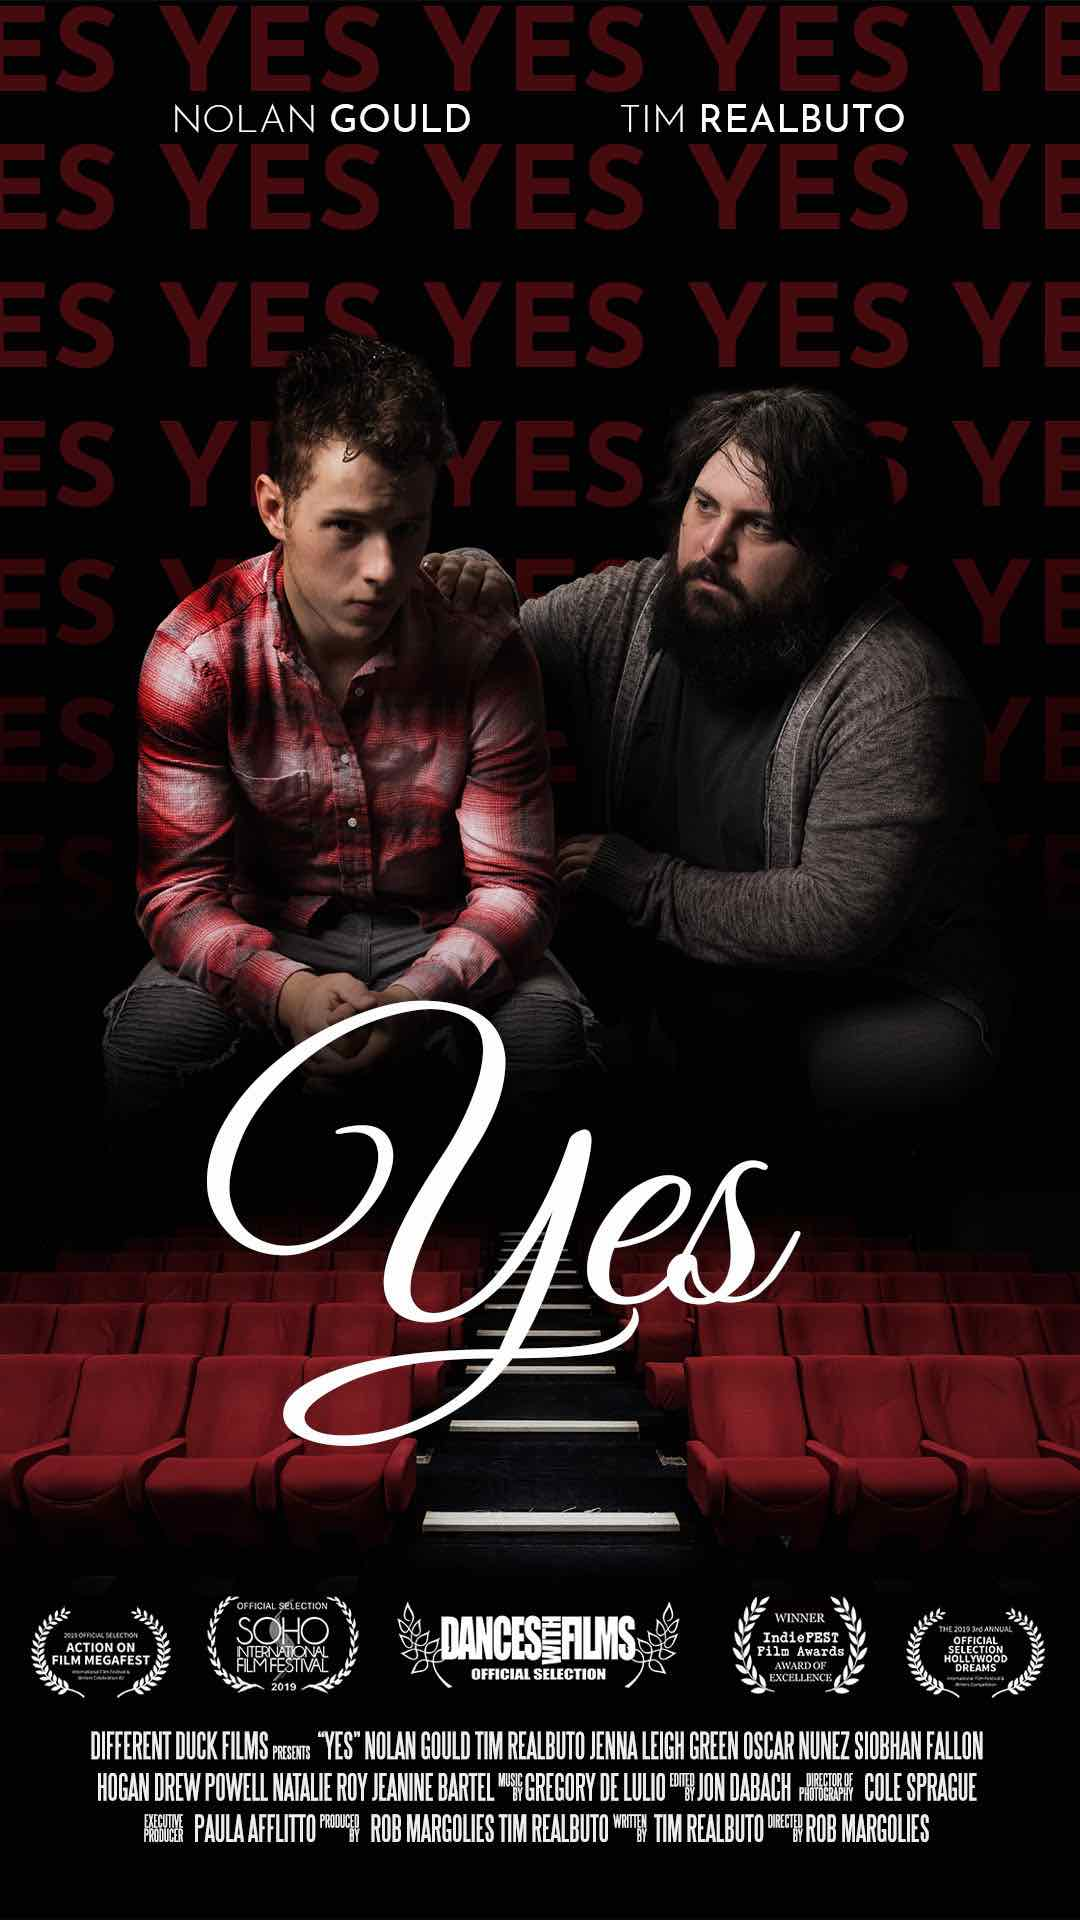 Nolan Gould and Tim Realbuto star in YES